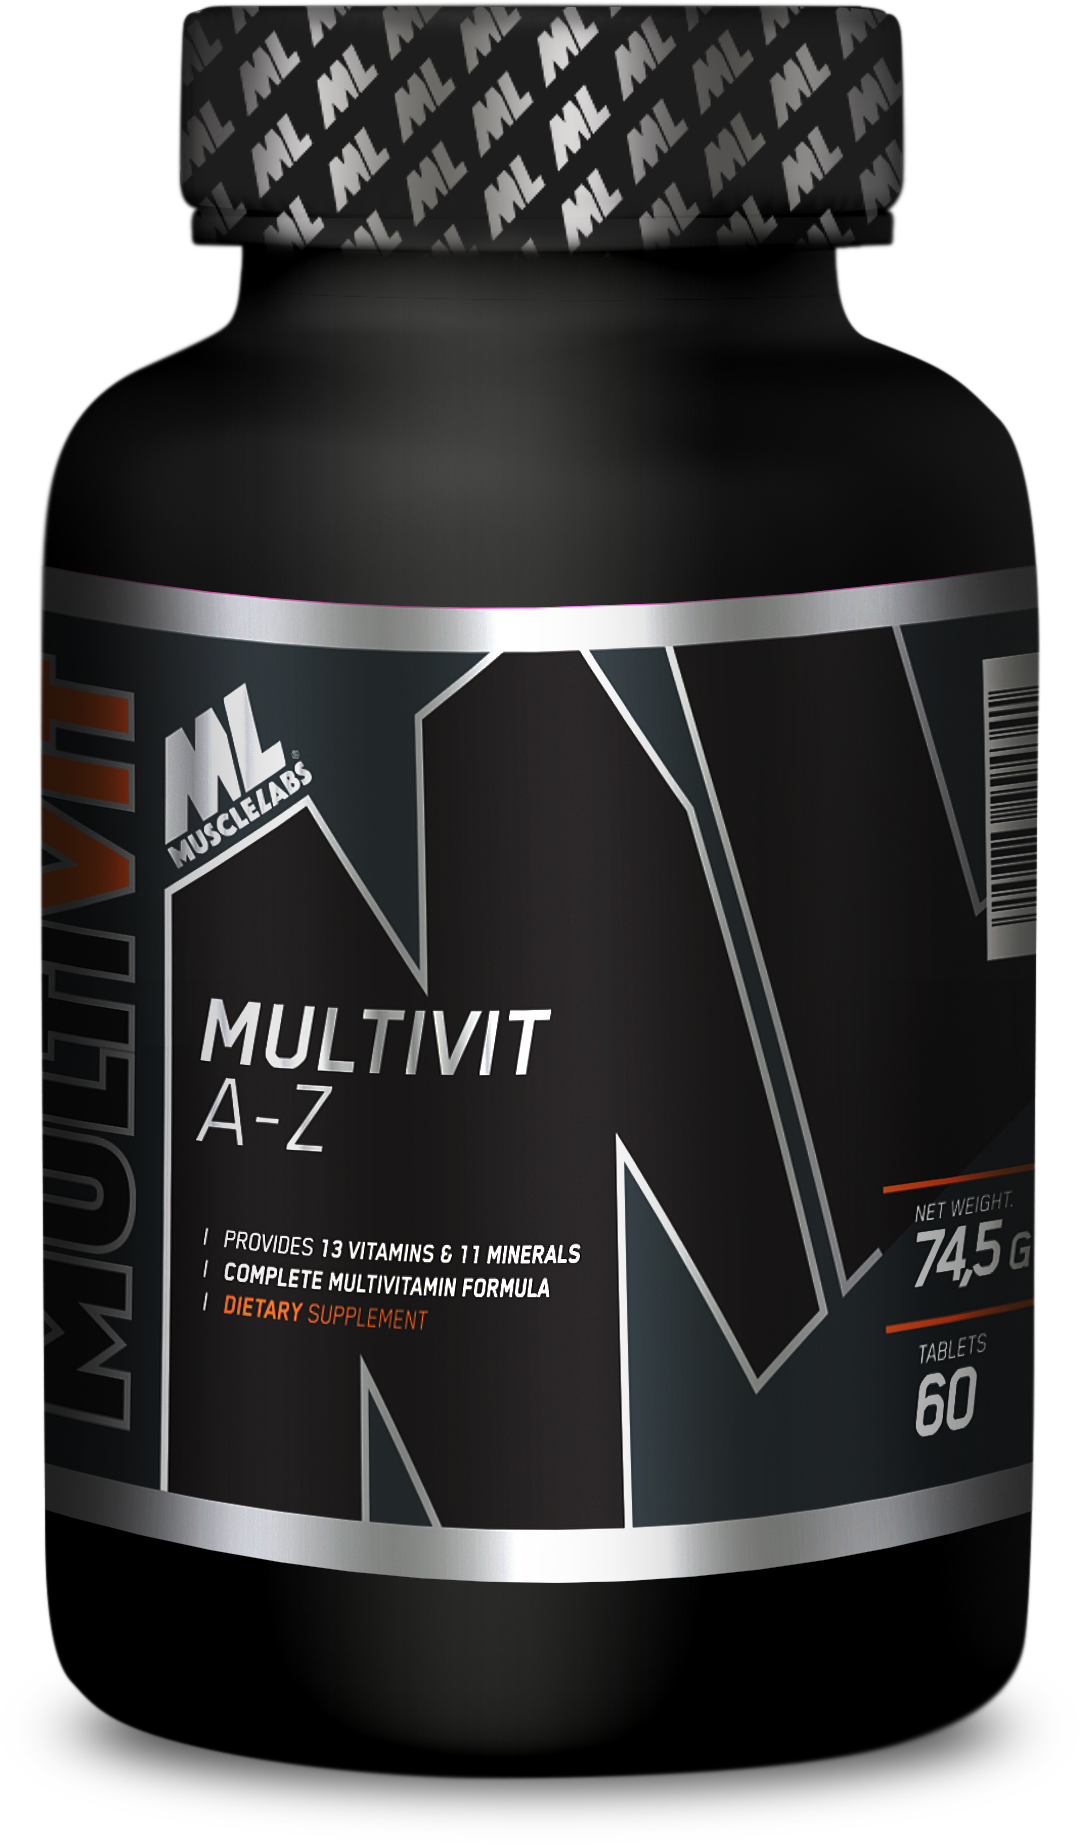 MUSCLELABS MULTIVIT A-Z